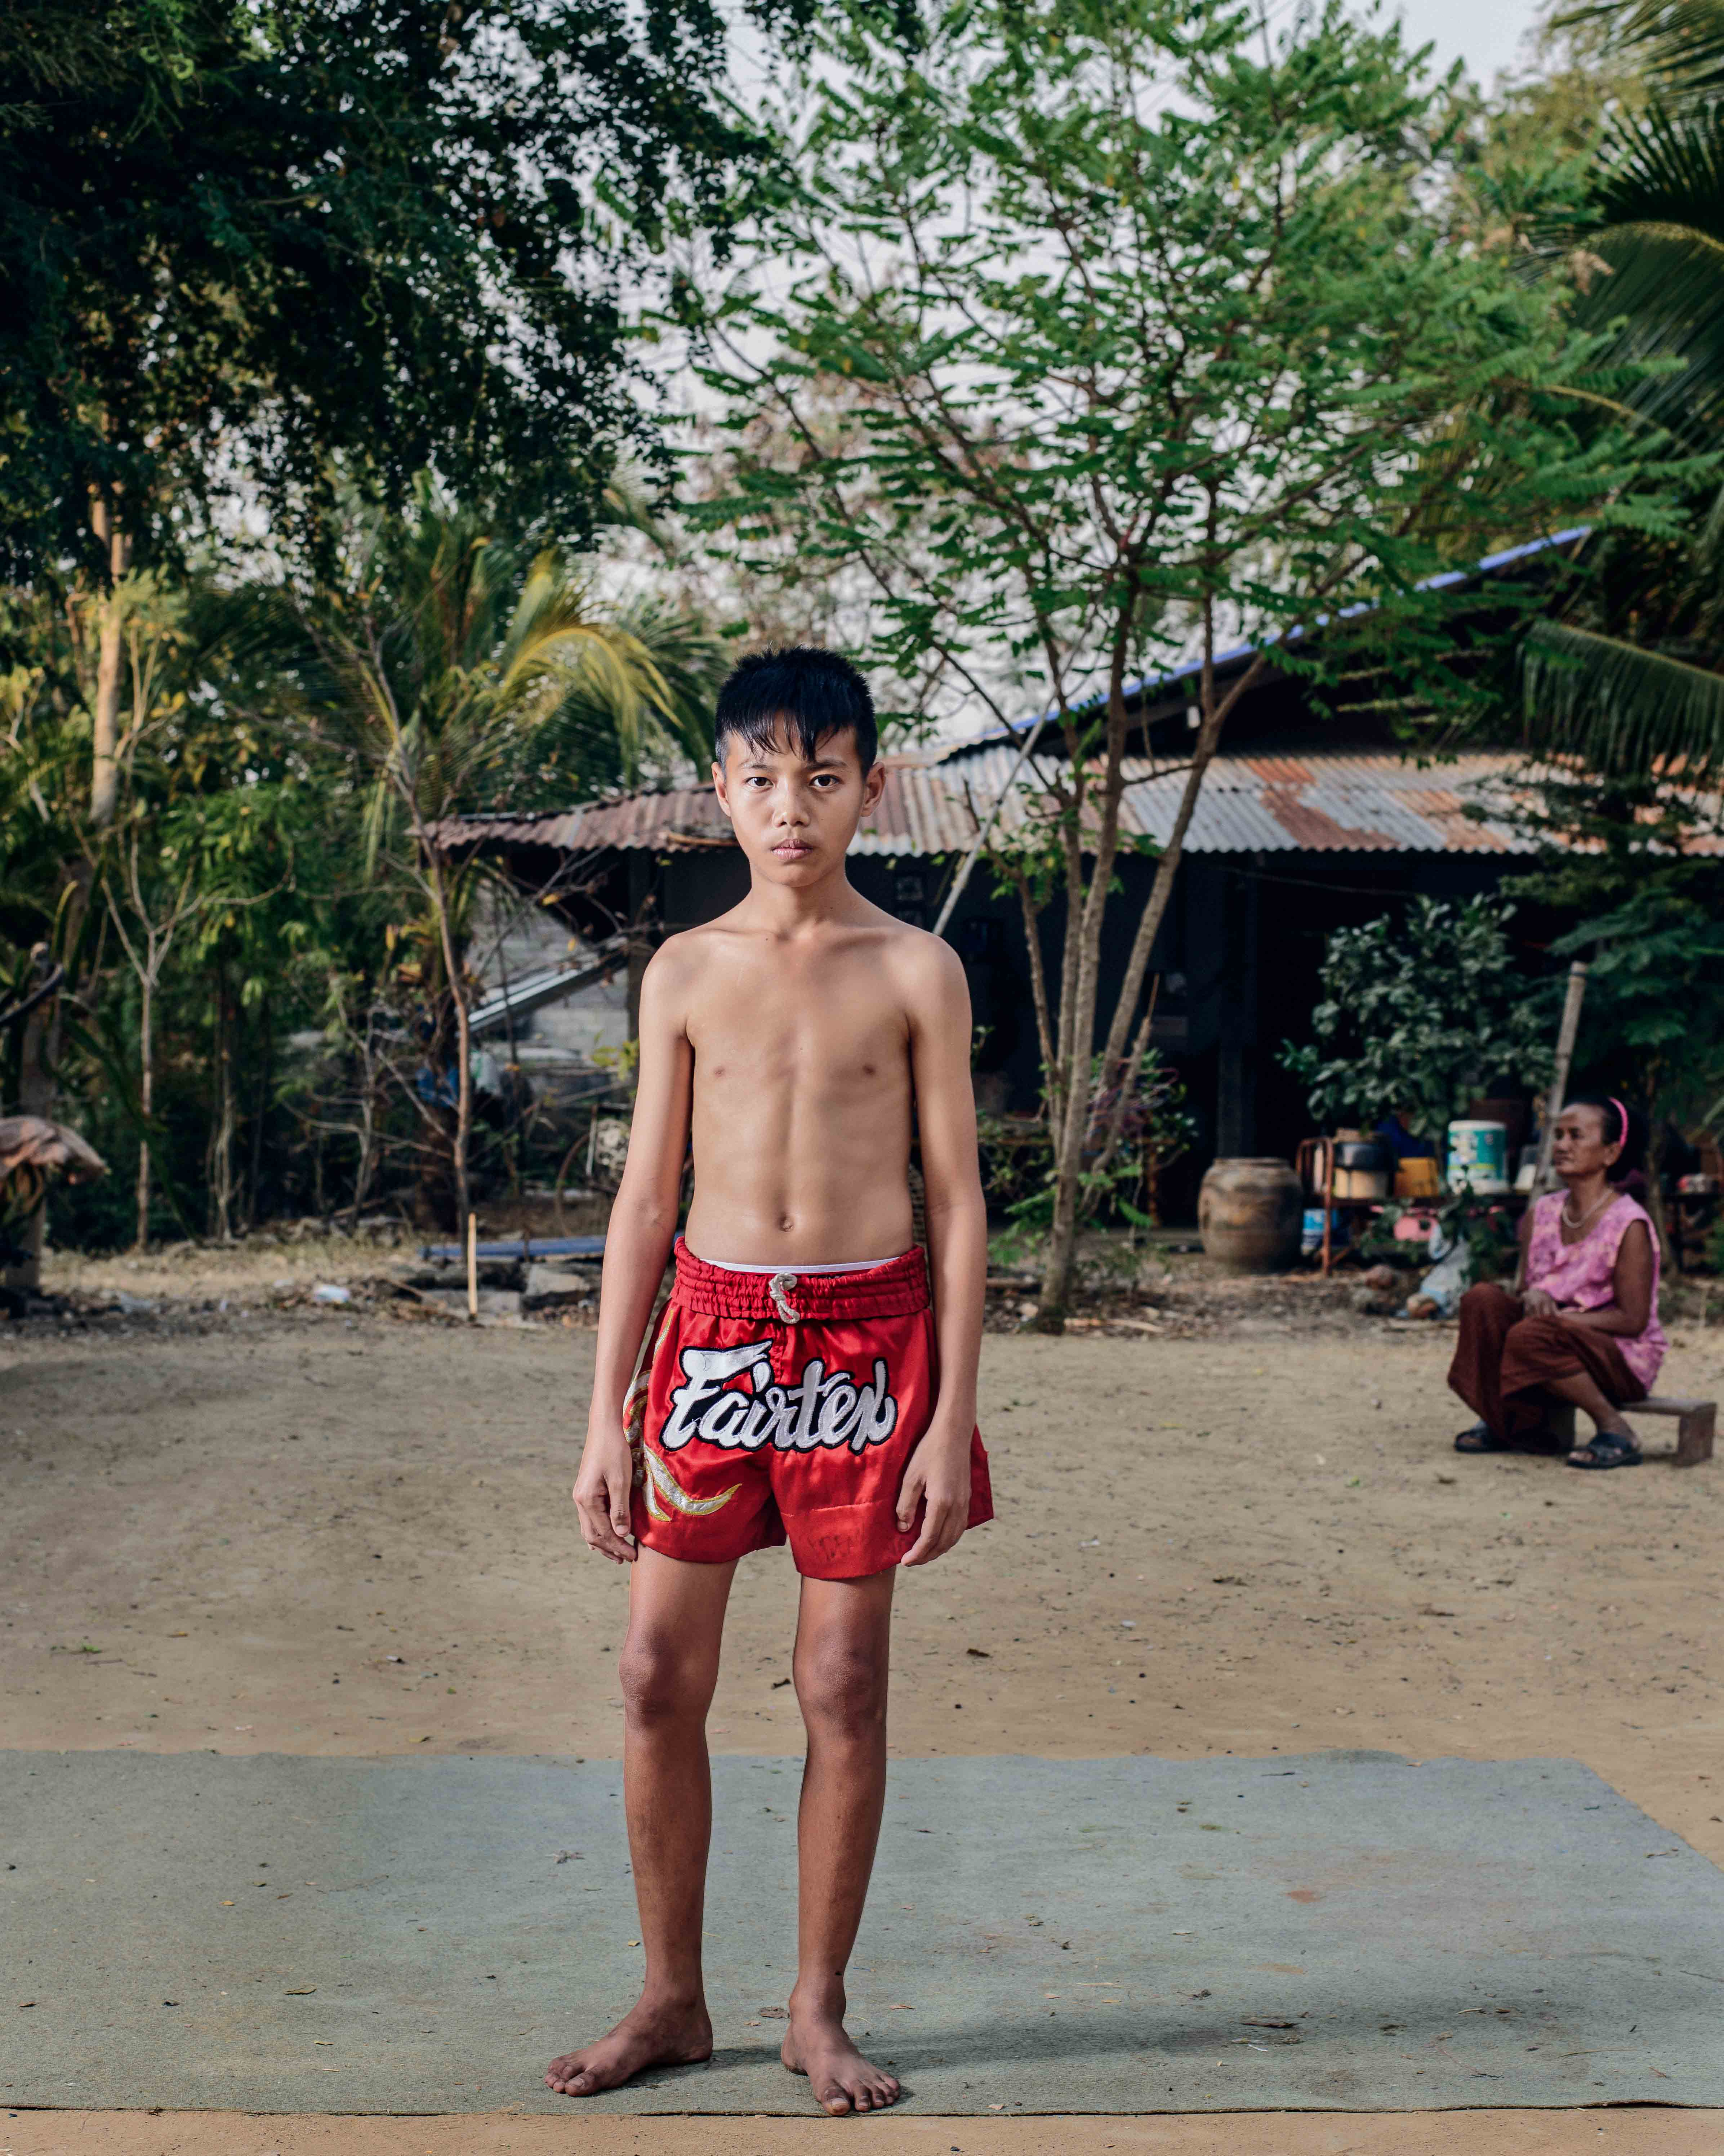 Robert-Paul-Cohen-Little-Tigers-Muay-Thai-Kids-3